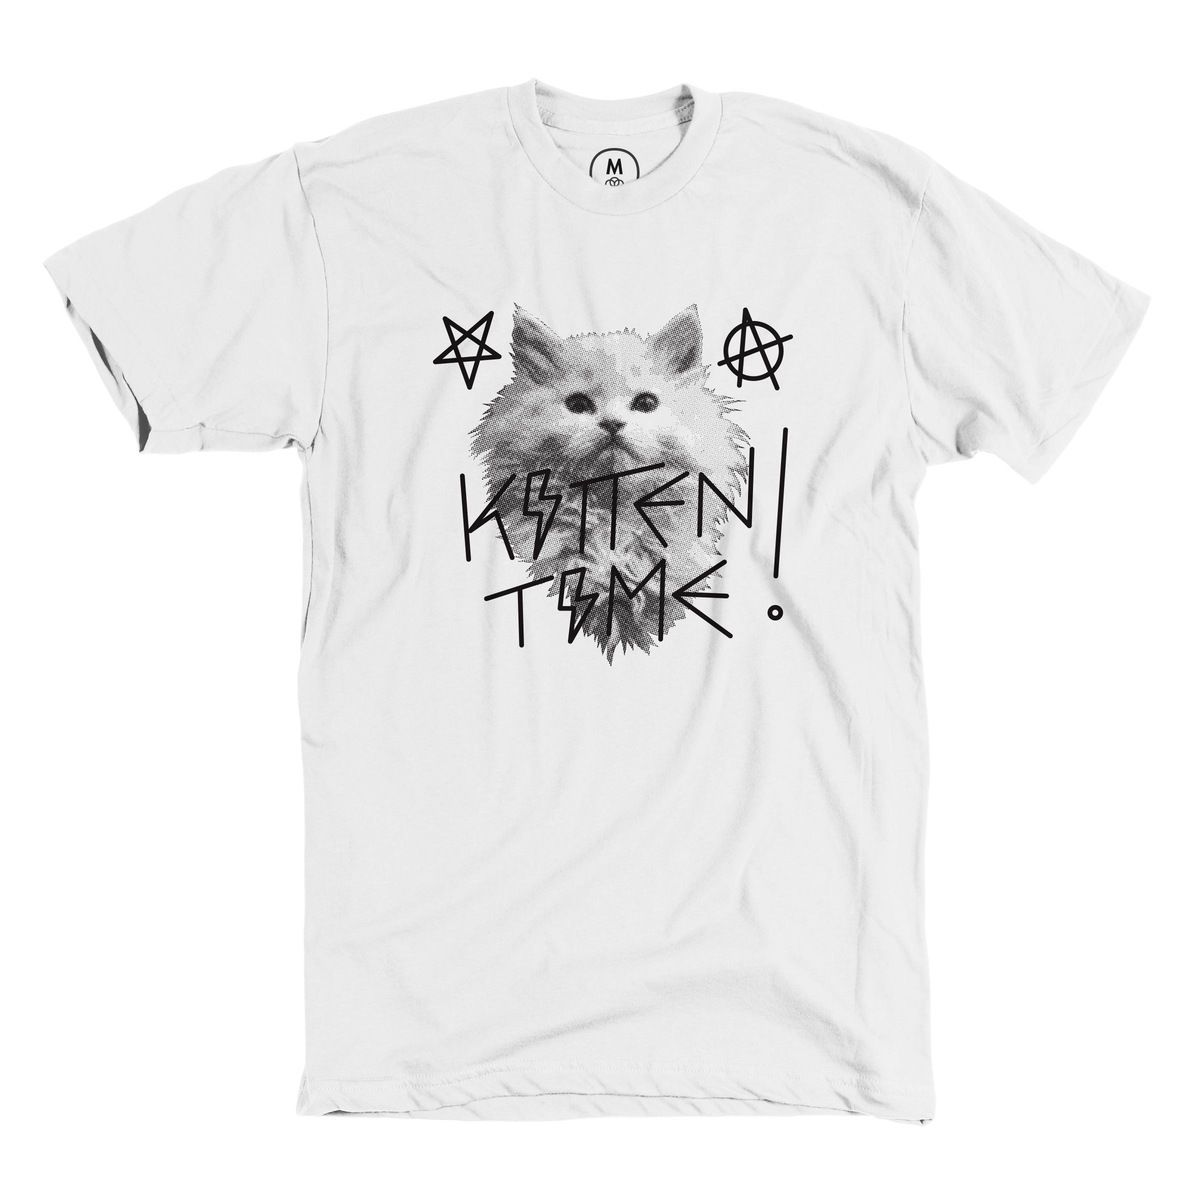 Hail Kitten Designed By Jennifer Norwood There S Always Time For Ritual Kitten Worship Merely Sacrifice Your Ice Cold Heart Kitten Cat Tshirt Mens Tshirts